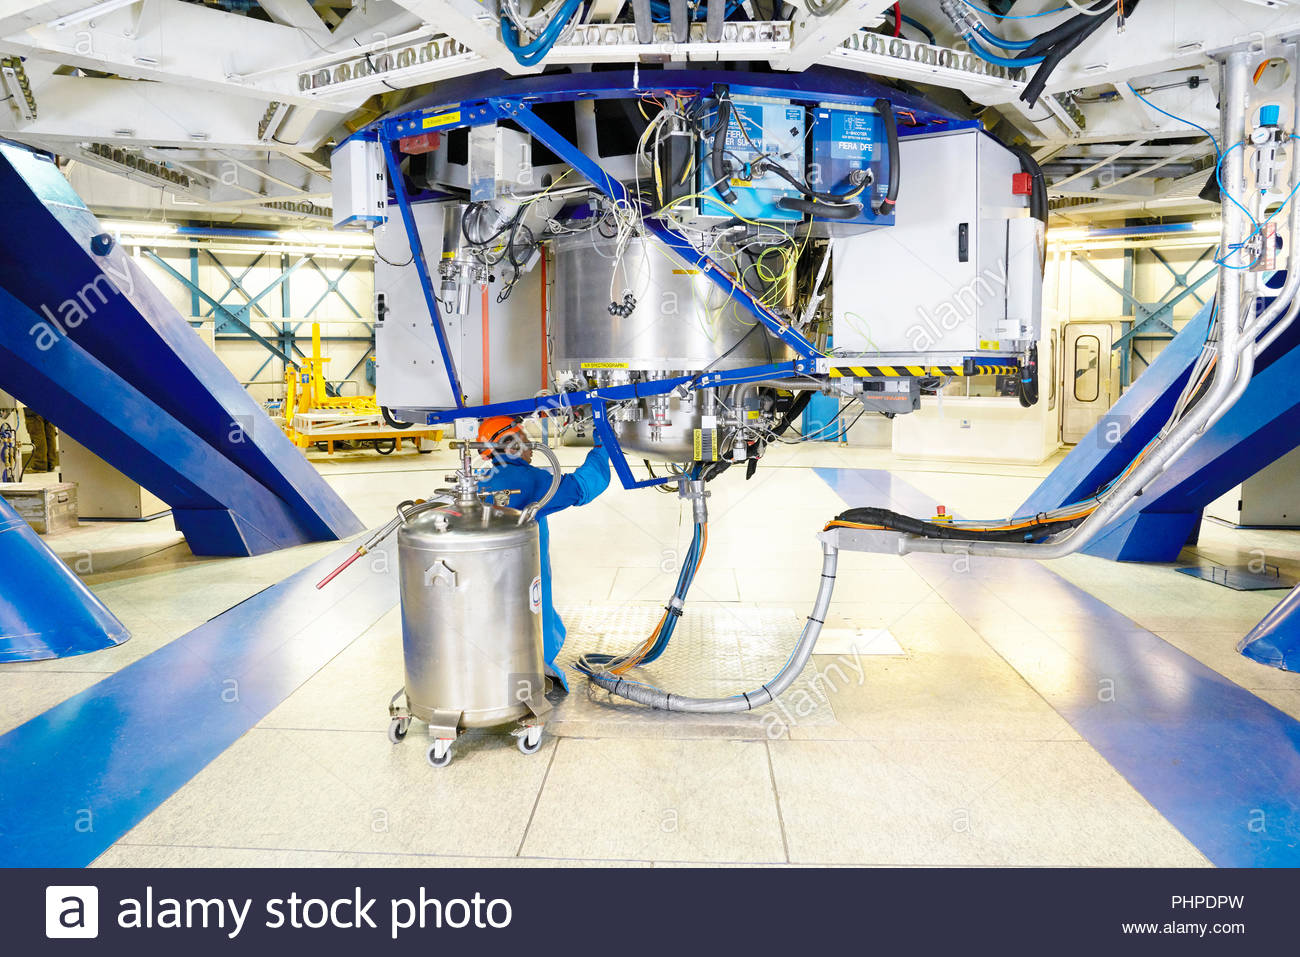 Scientist doing maintenance on telescope at Paranal Observatory - Stock Image